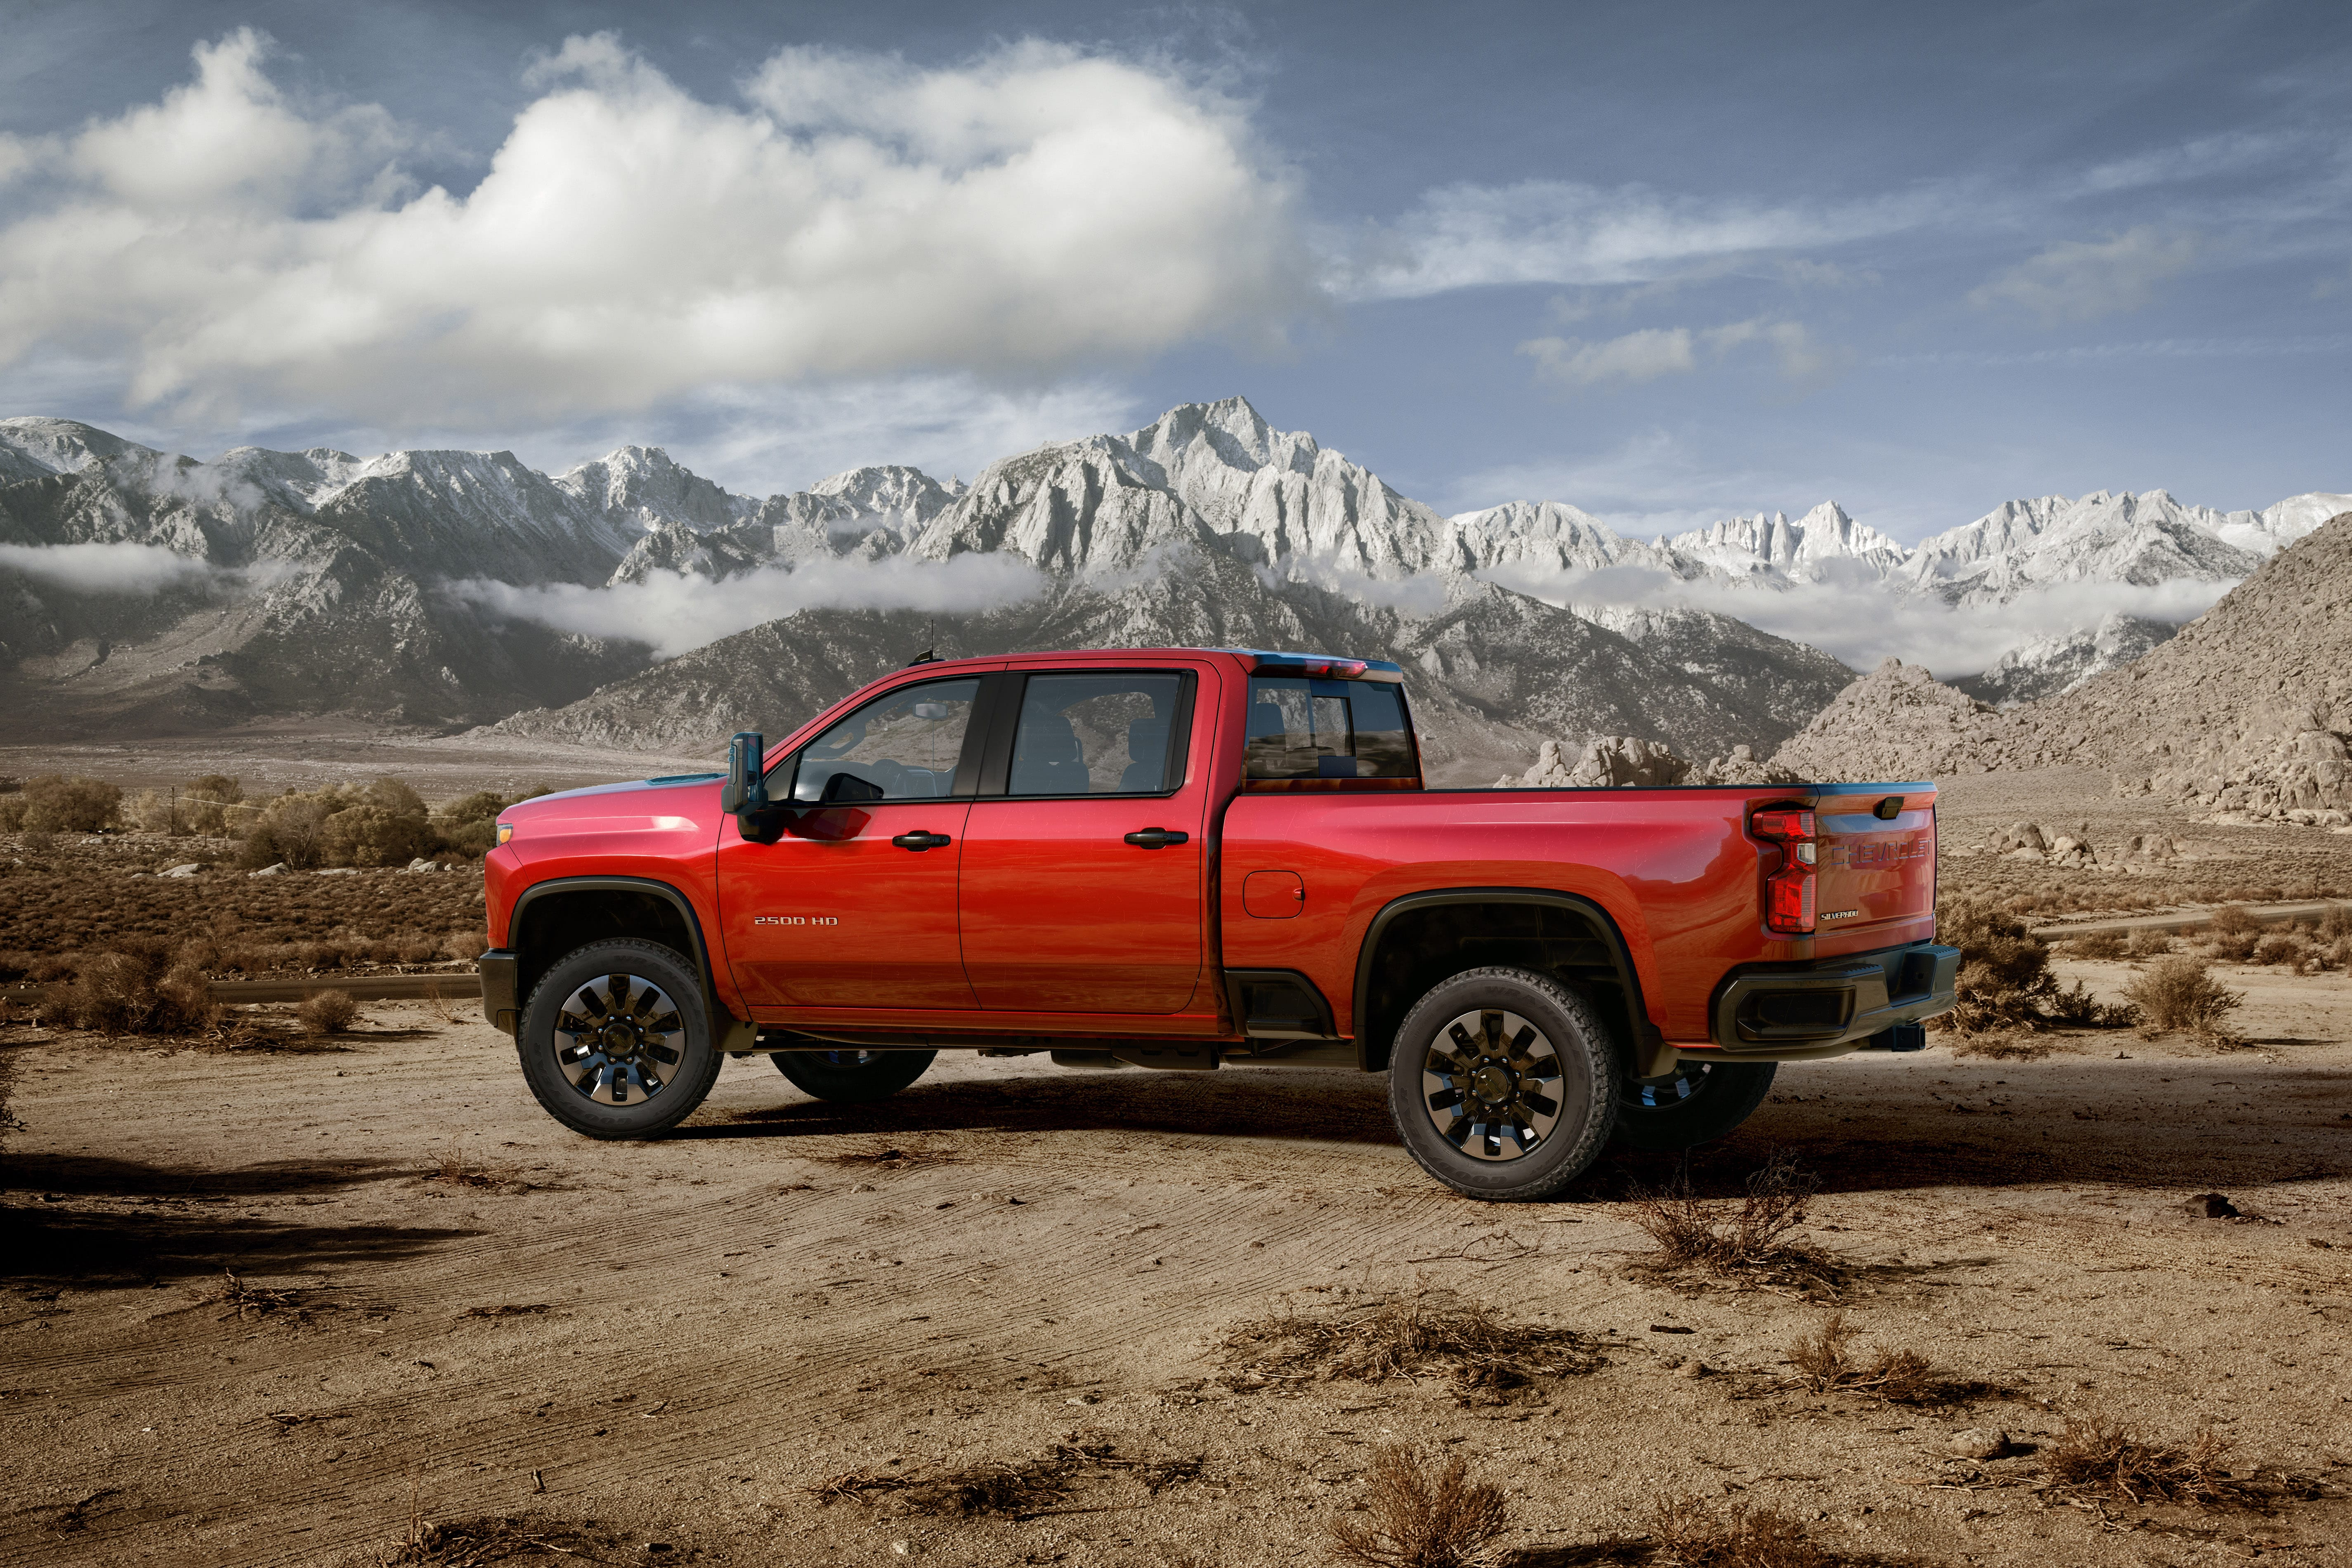 2020 Chevrolet HD 2500/3500 Trucks Revealed - Pickup Truck ...